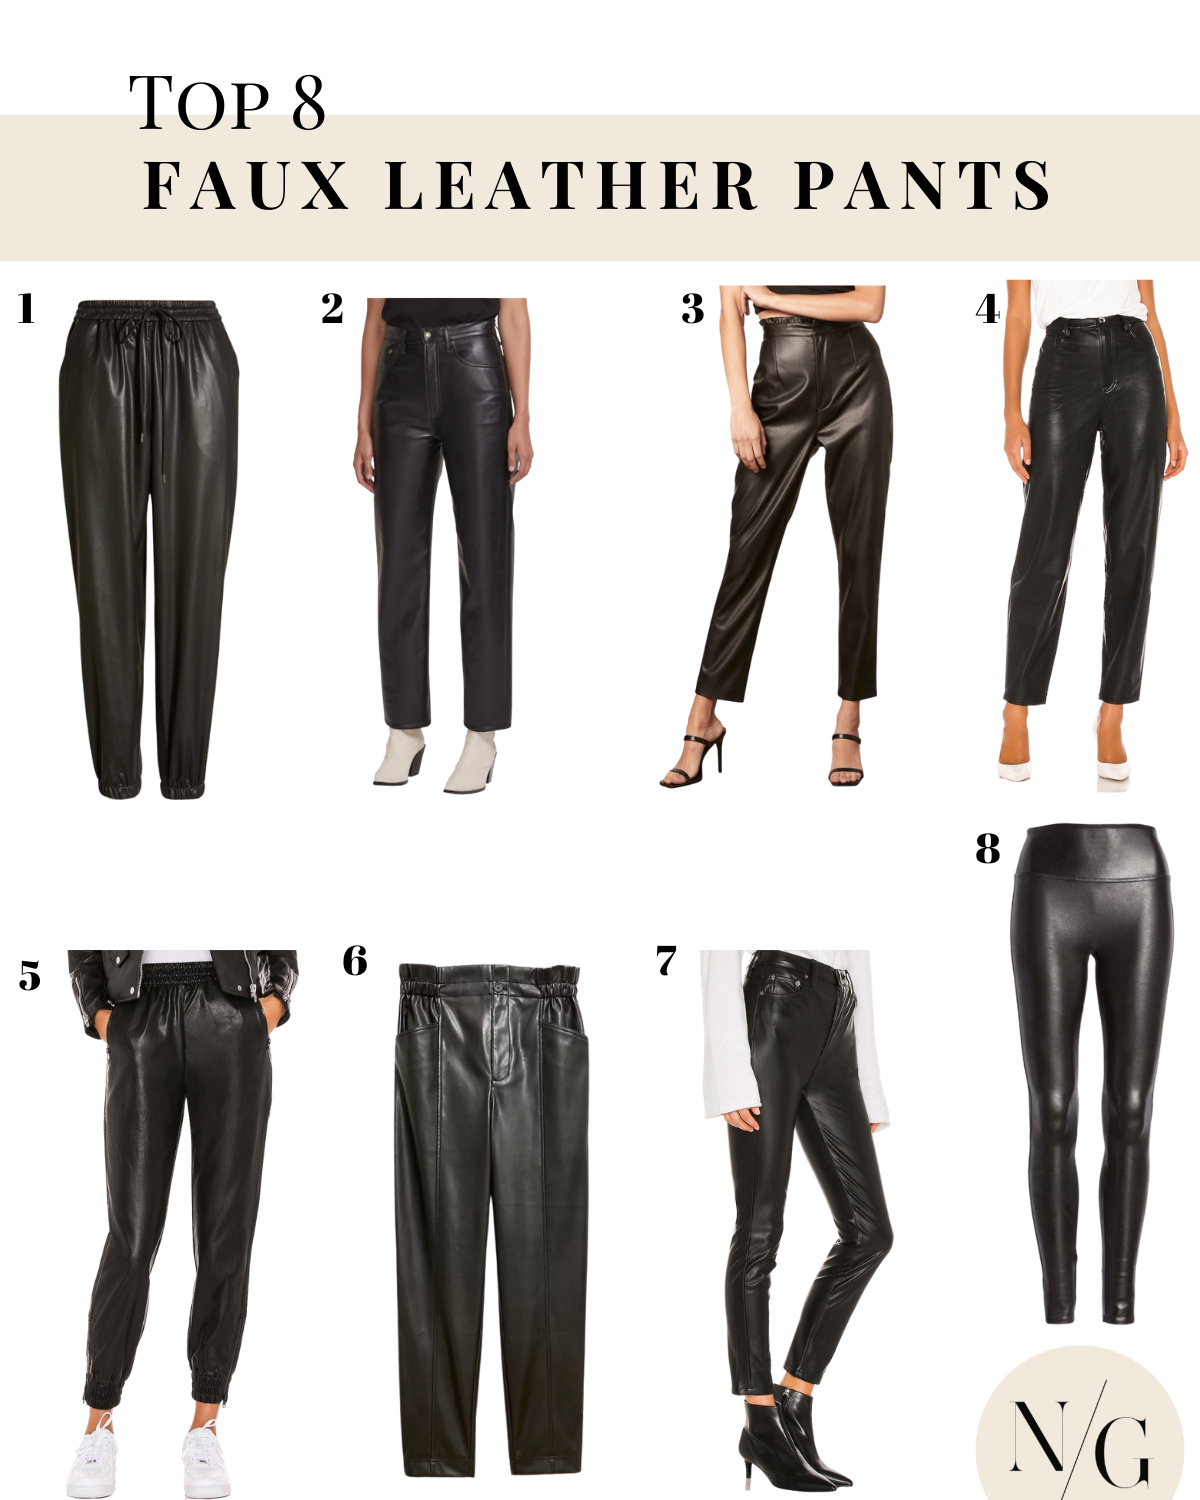 faux leather pants |Faux Leather Pants by popular San Diego fashion blog, Navy Grace: collage image of faux leather pants.